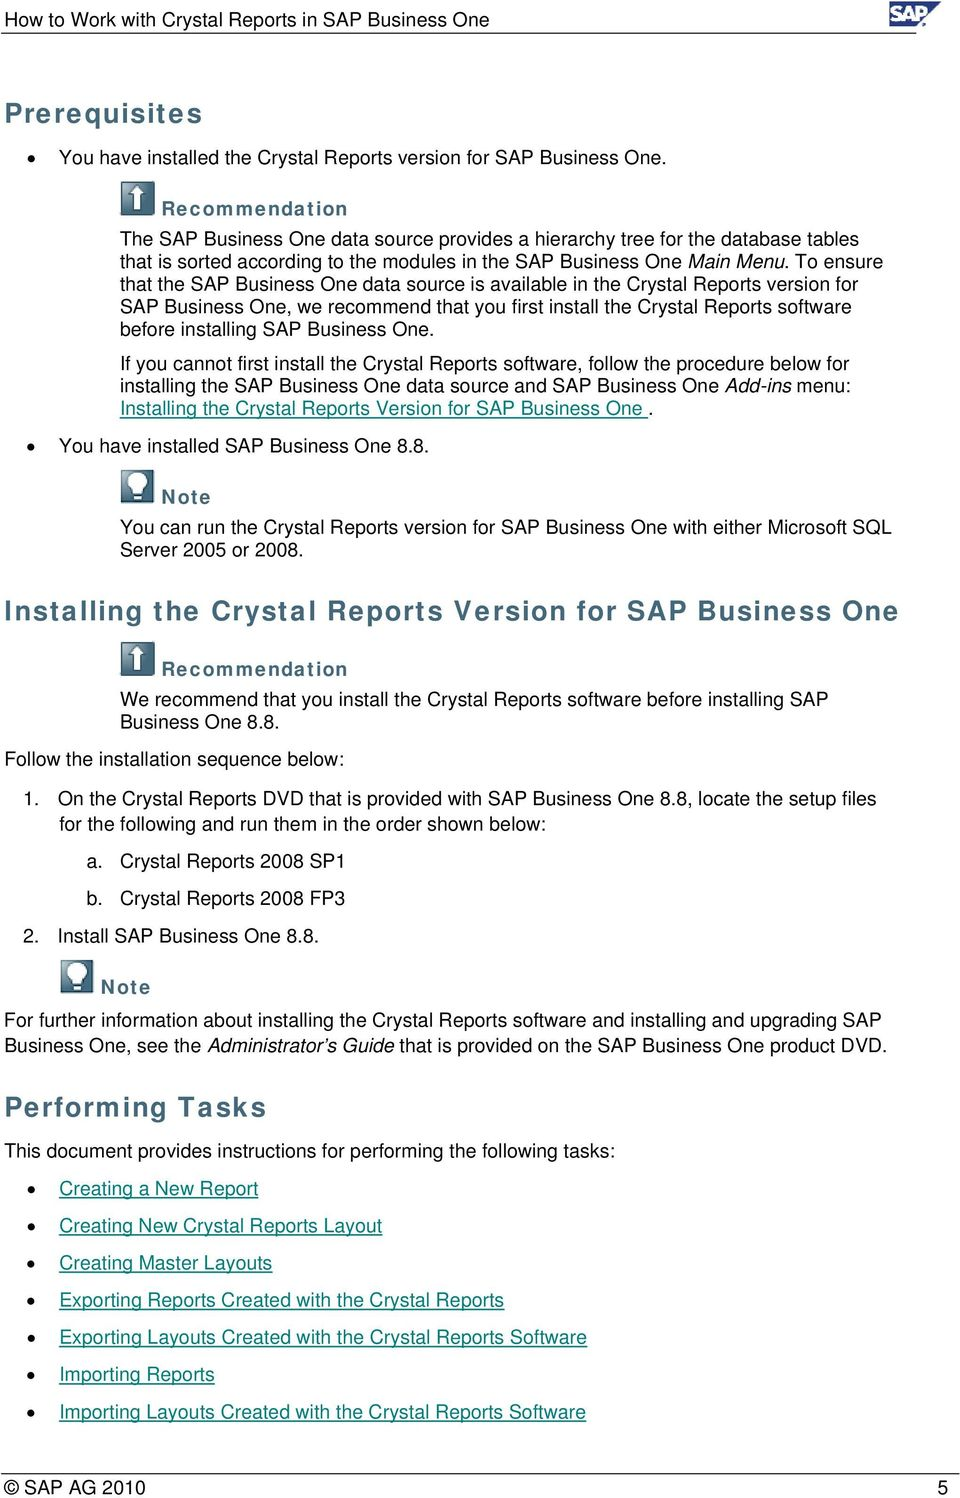 To ensure that the SAP Business One data source is available in the Crystal Reports version for SAP Business One, we recommend that you first install the Crystal Reports software before installing